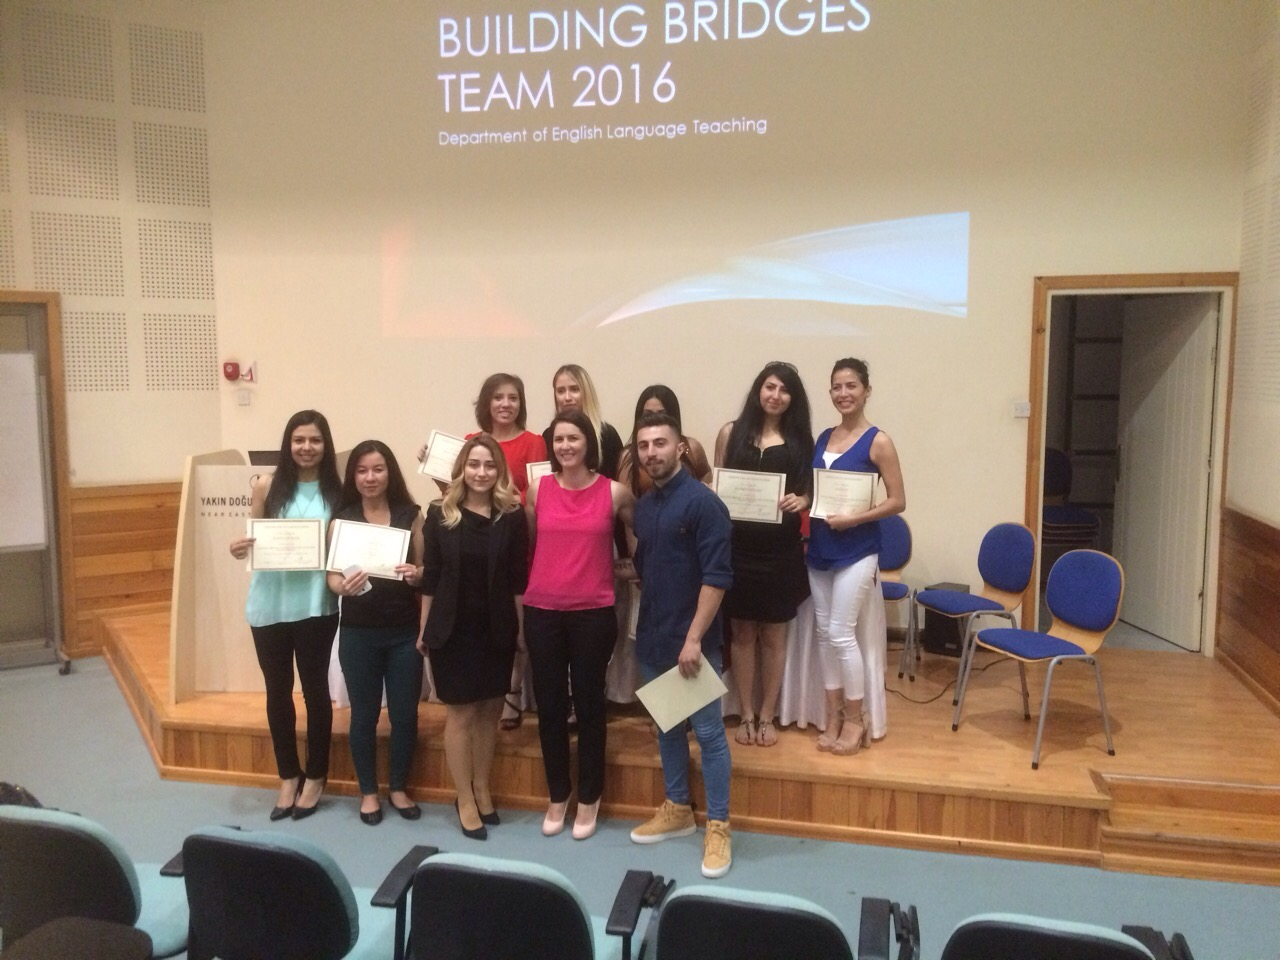 Building Bridges Team shared their experiences with ELT students